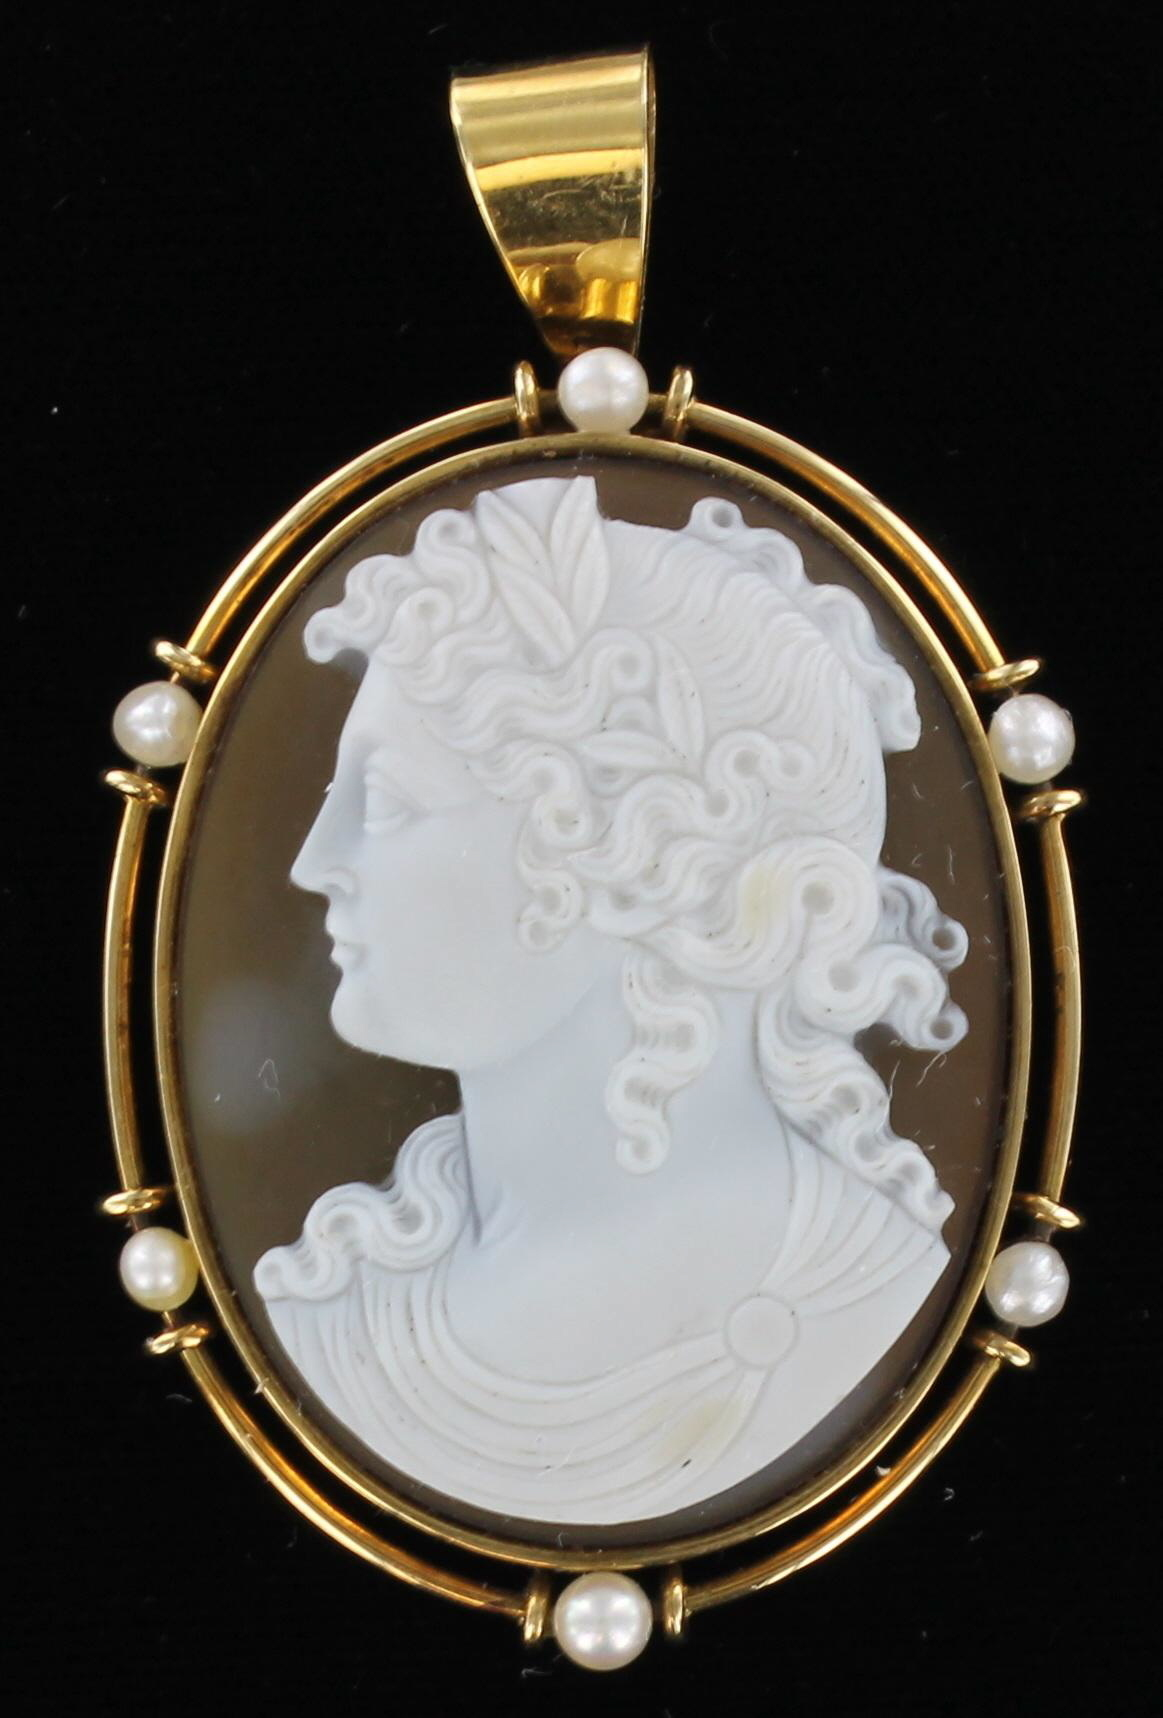 14KT AGATE & SHELL CAMEO WITH PEARLS 1920 420-47